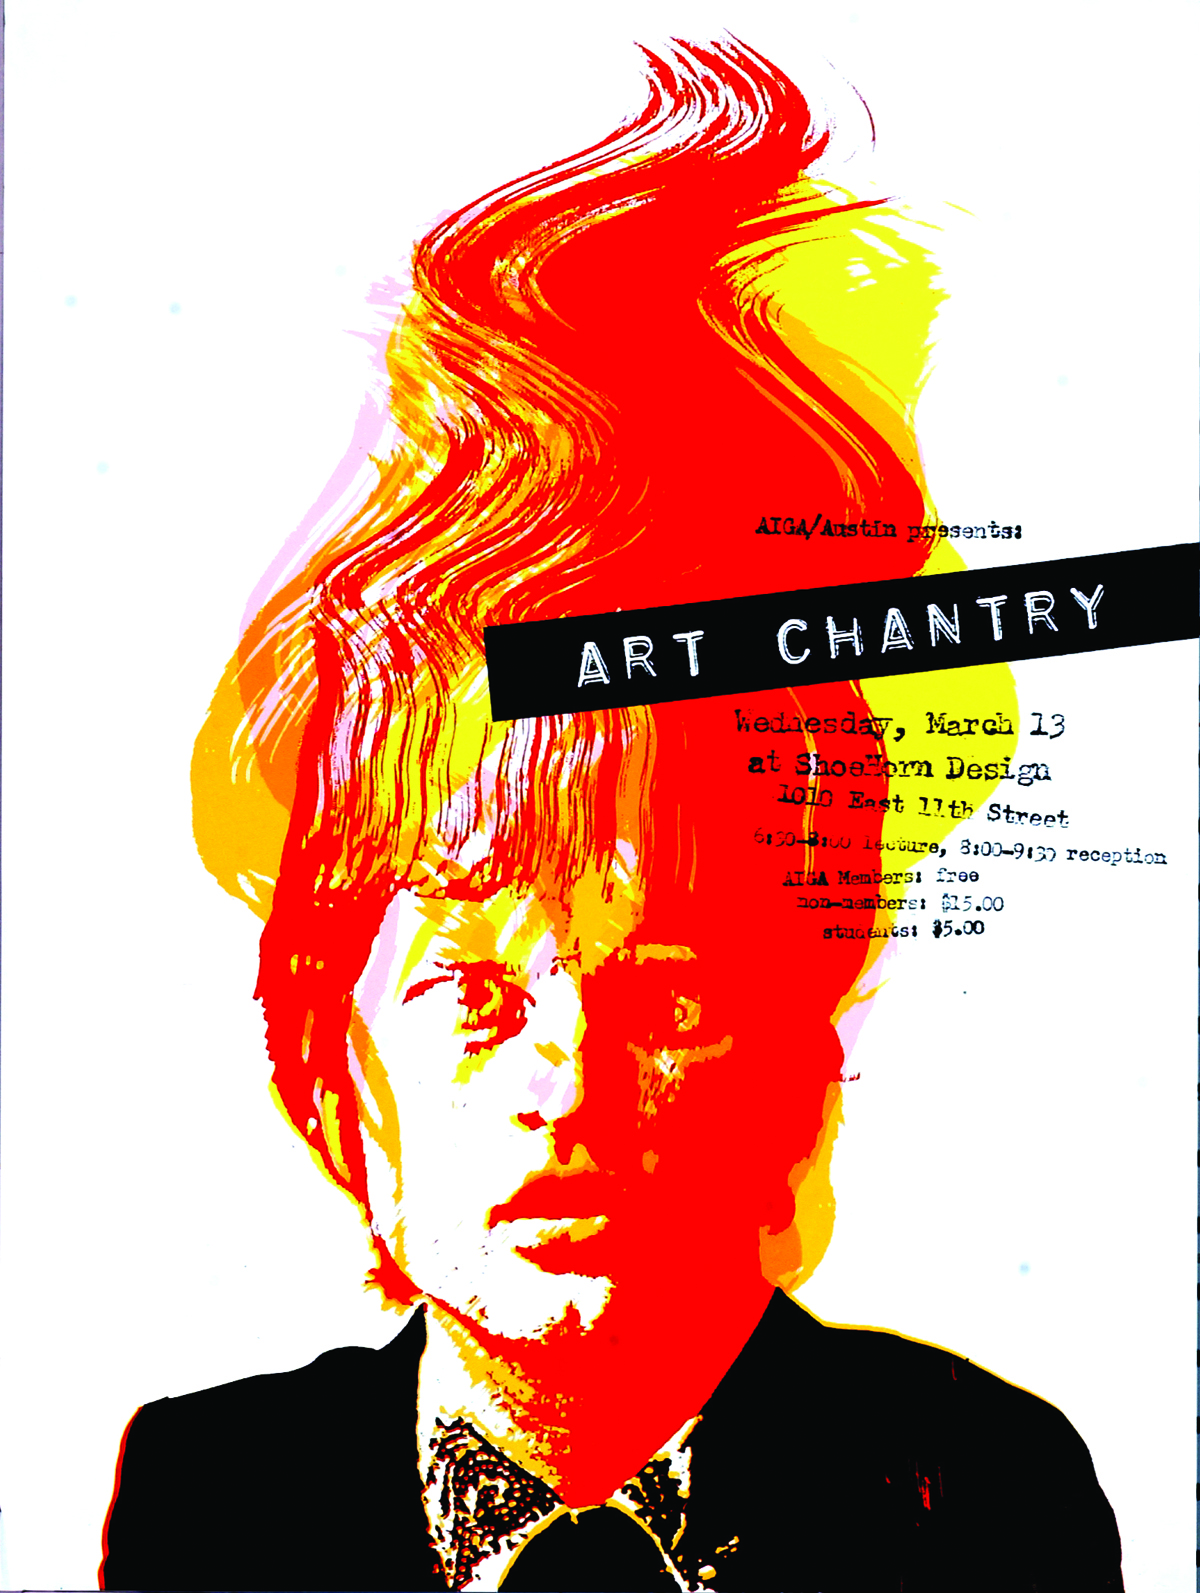 Art Chantry at AIGA, Austin poster, 2004